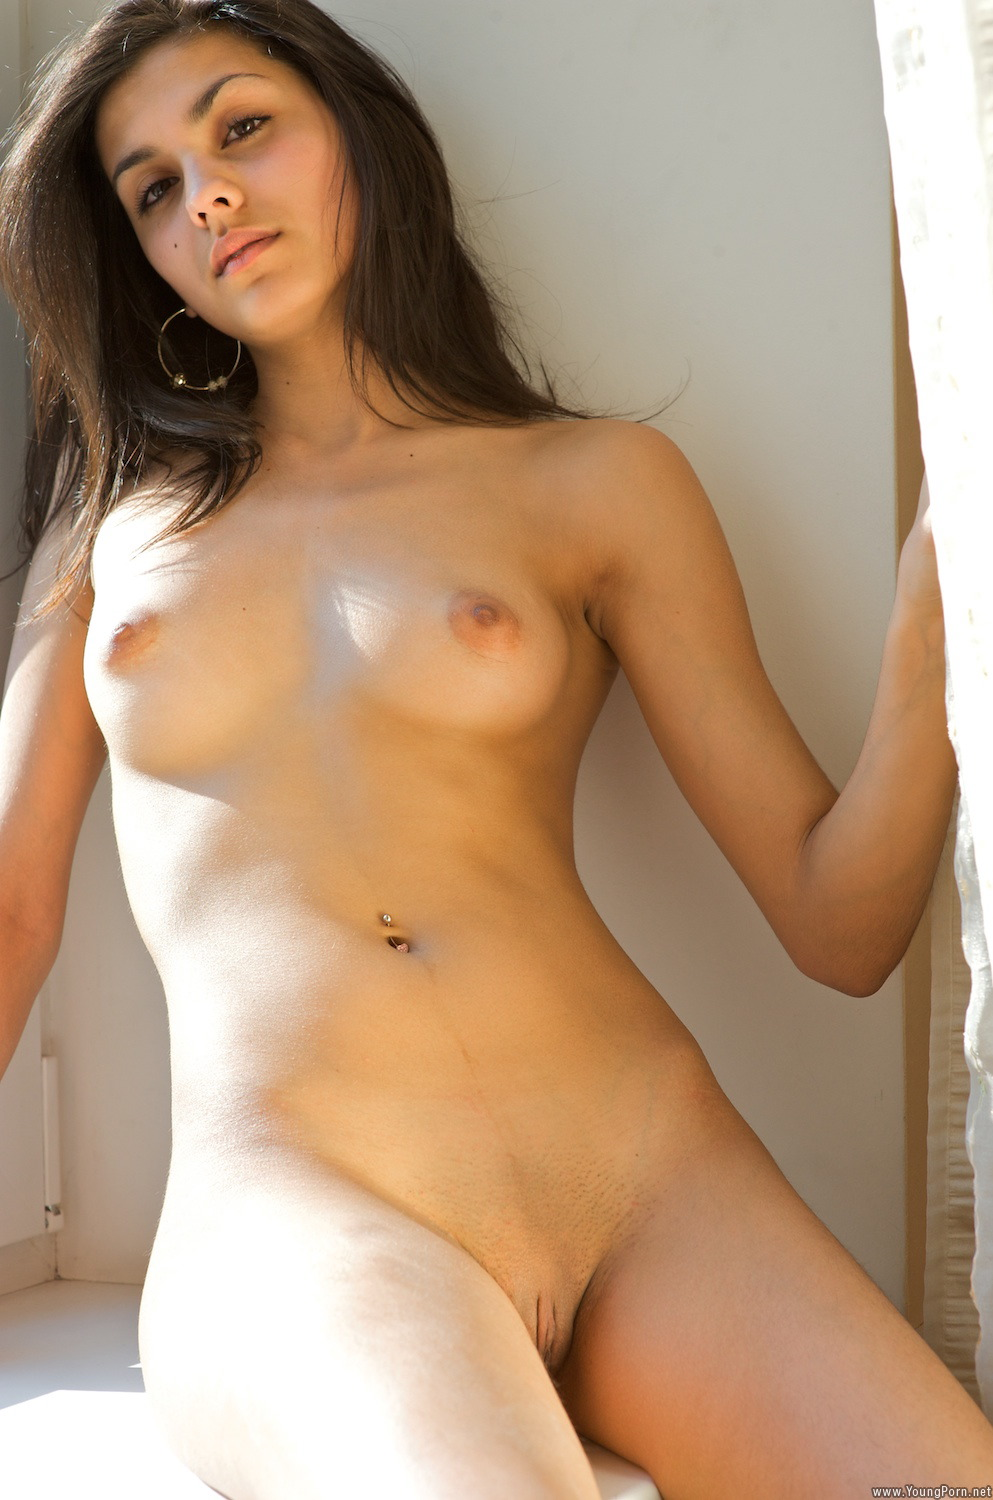 Congratulate, Teen nude model pics me